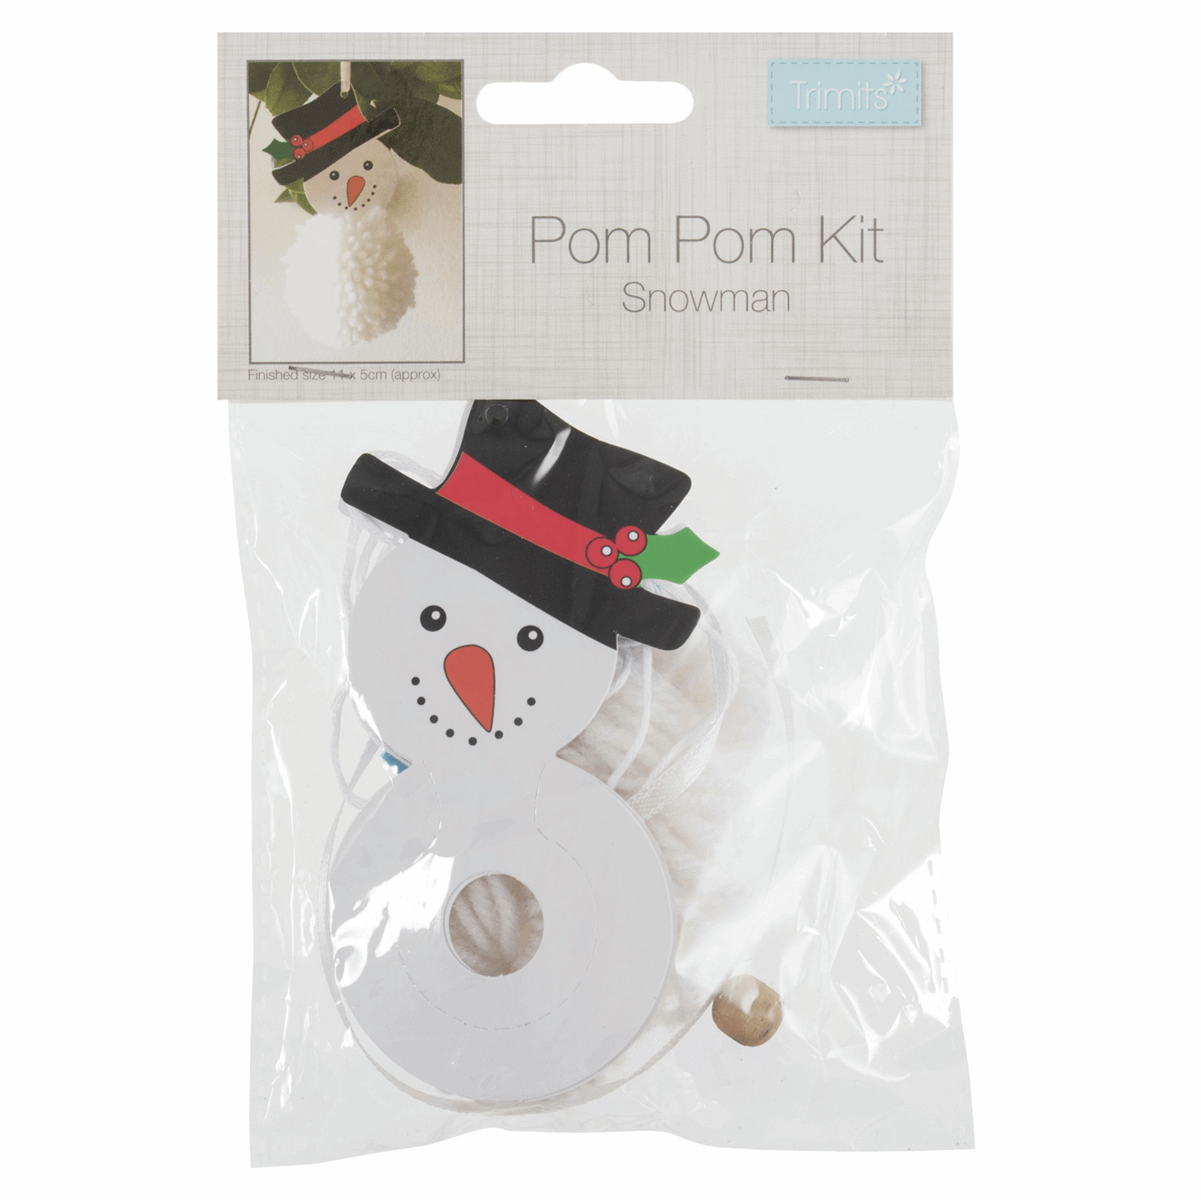 Picture of Pom Pom Decoration Kit: Snowman: Pack of 1